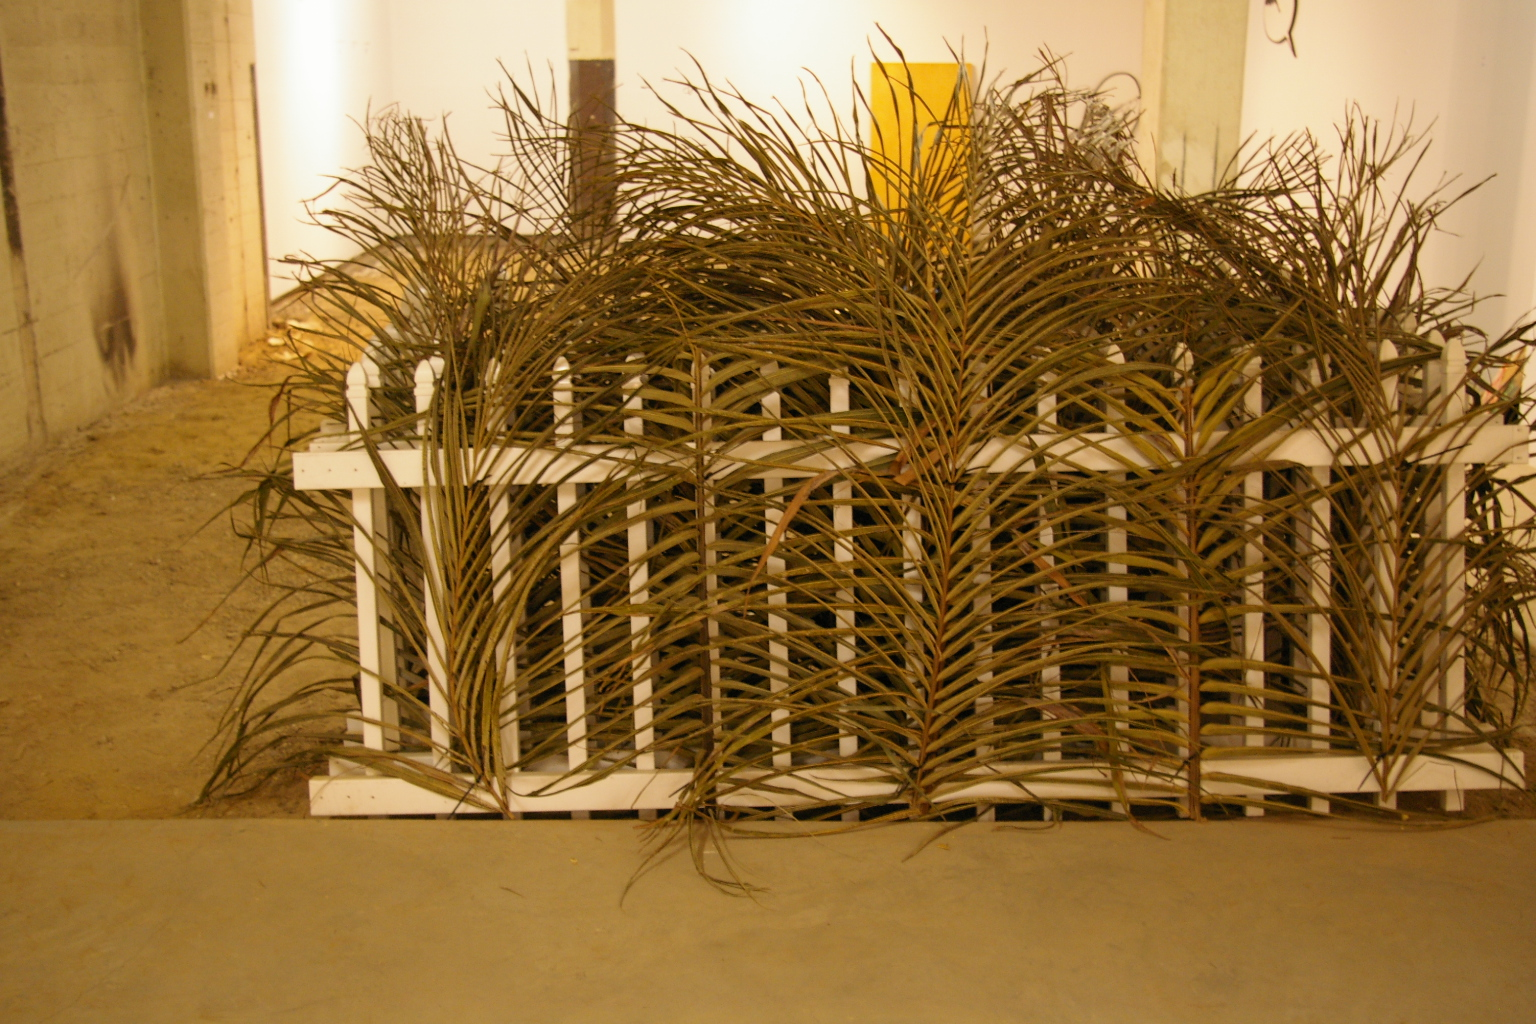 Untitled 2.5'x6'x5' palm leaves7white fence installation 2011 .JPG